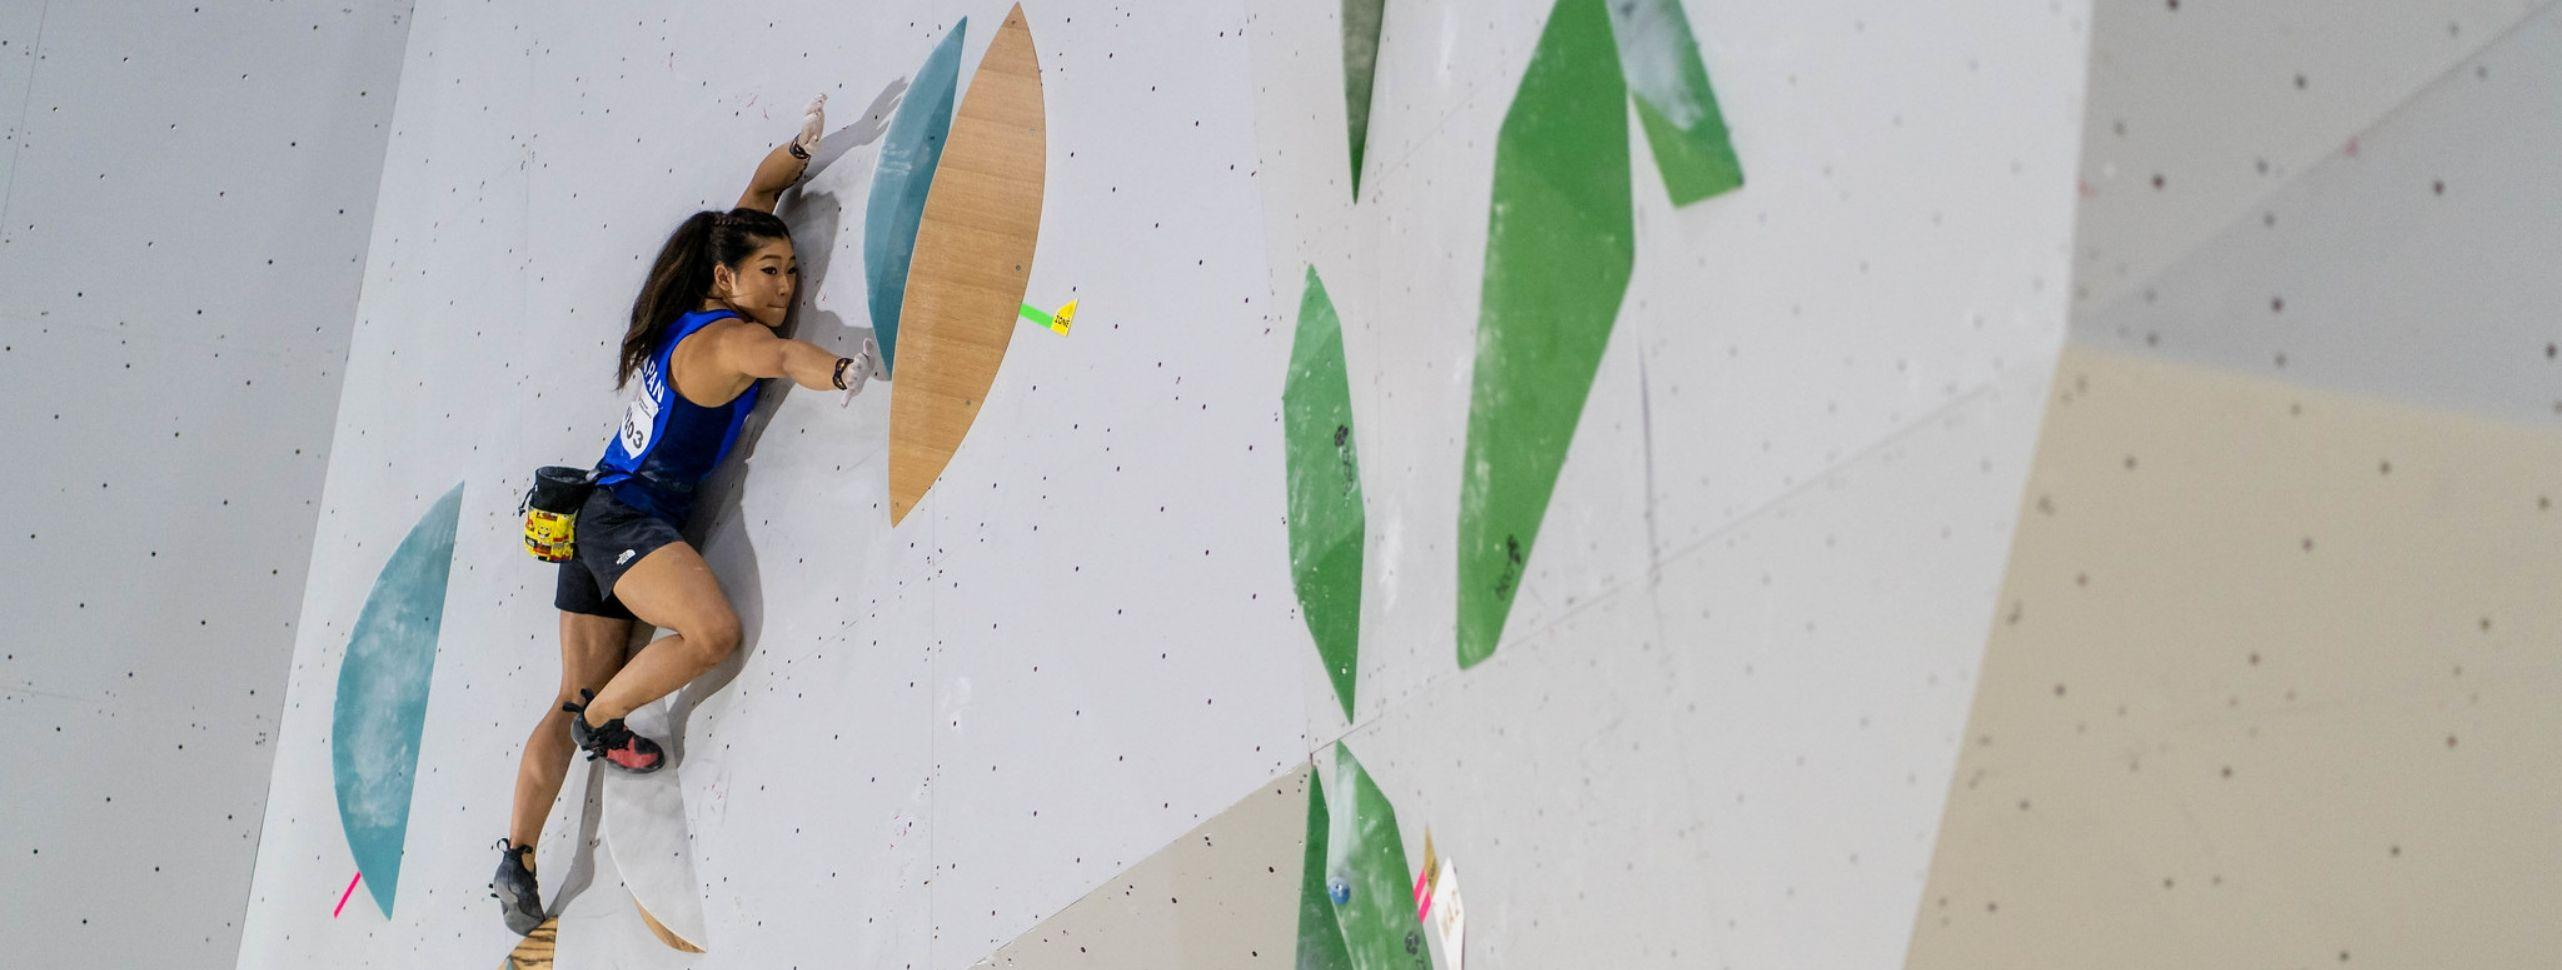 IFSC Climbing World Championships 2019 Qualifications to be Live-Streamed